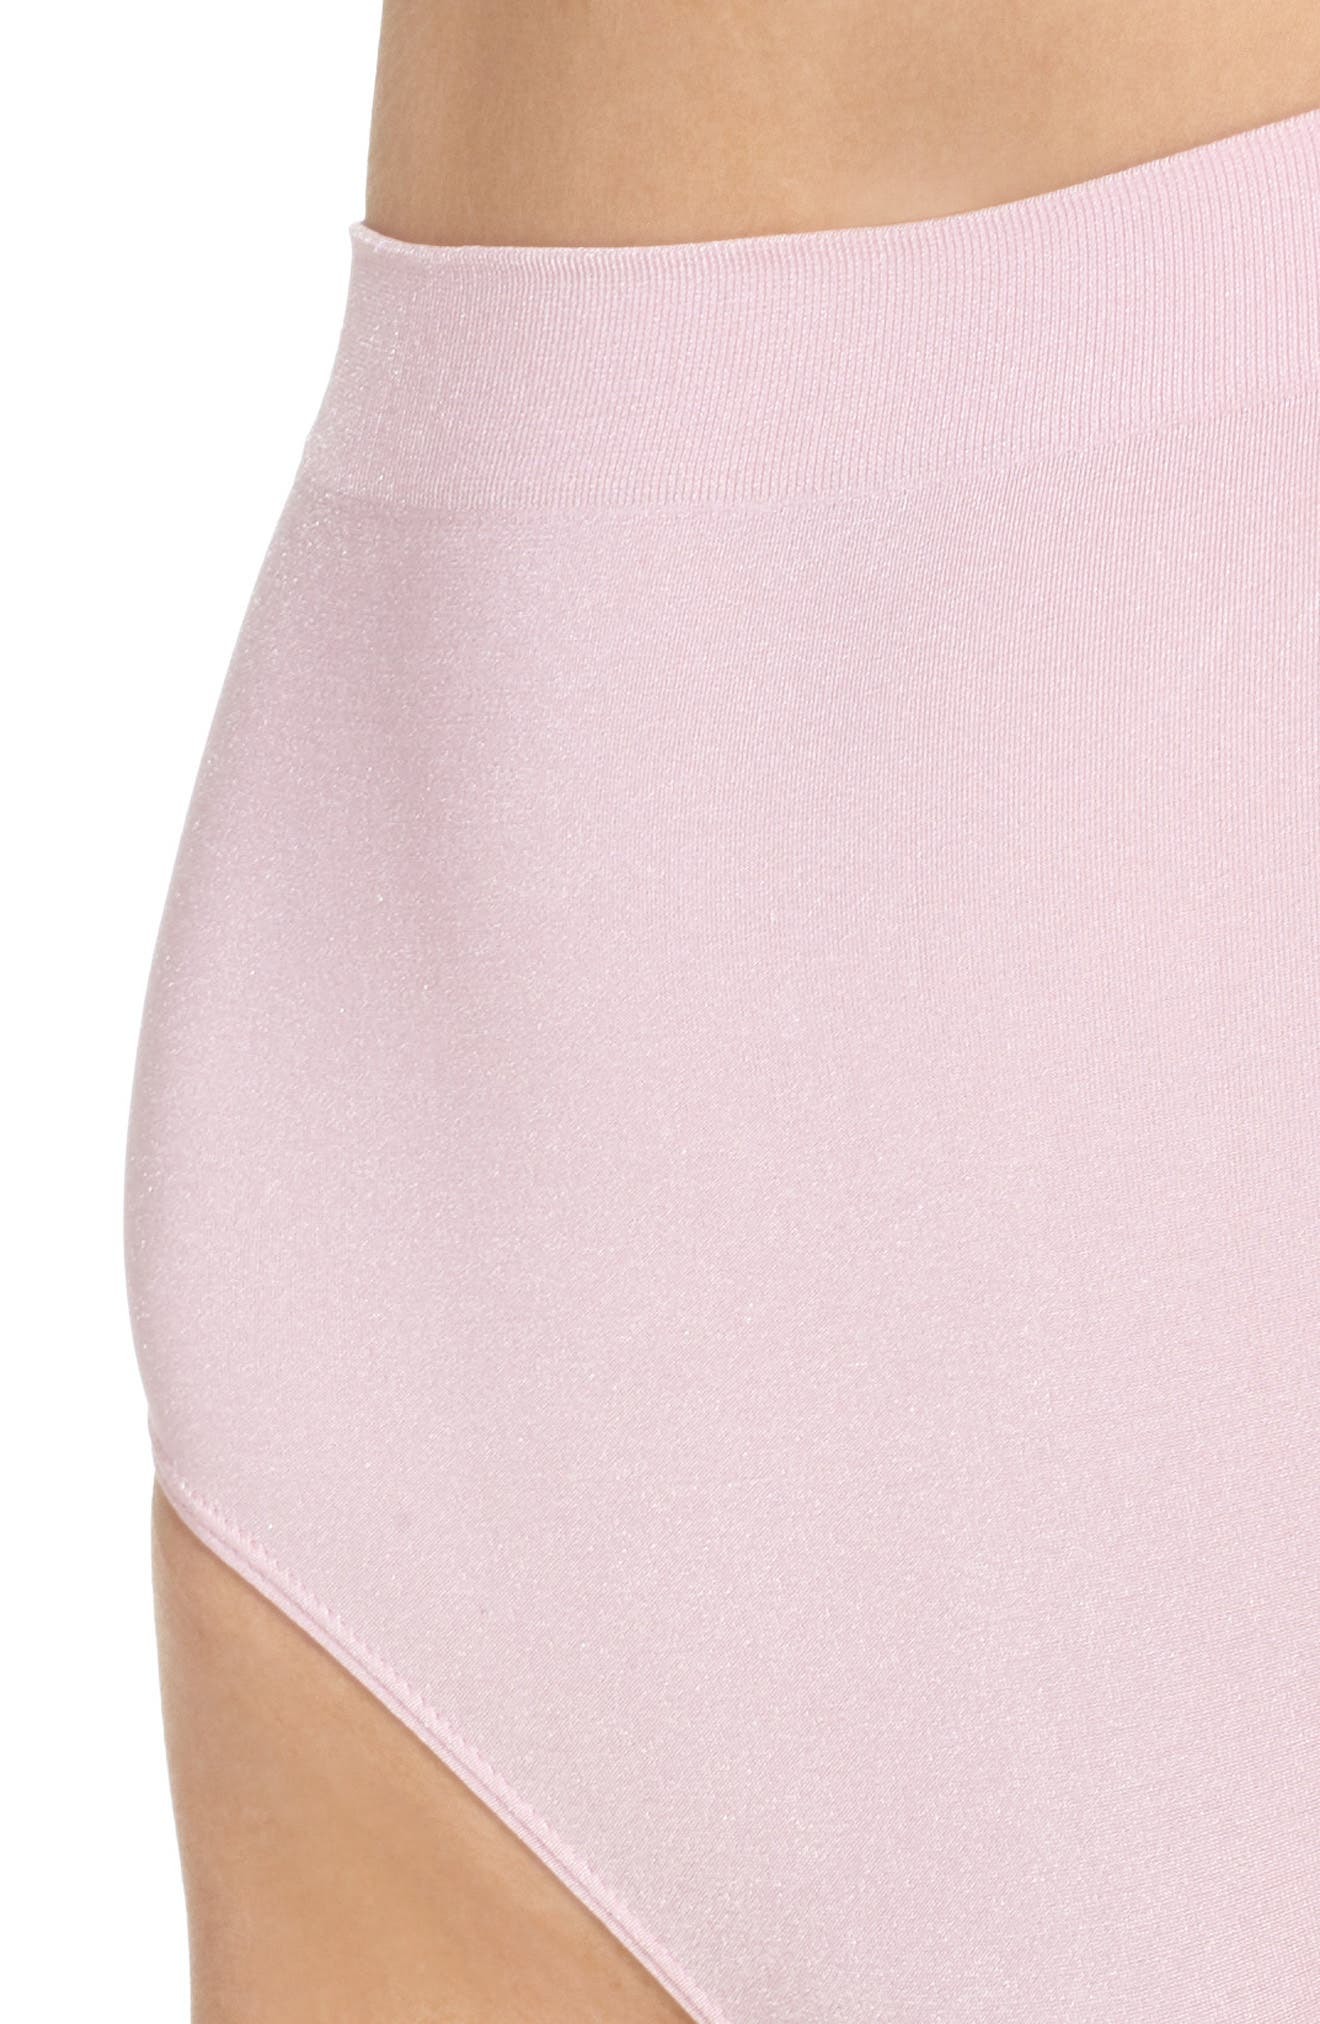 B Smooth Briefs,                             Alternate thumbnail 7, color,                             Cameo Pink